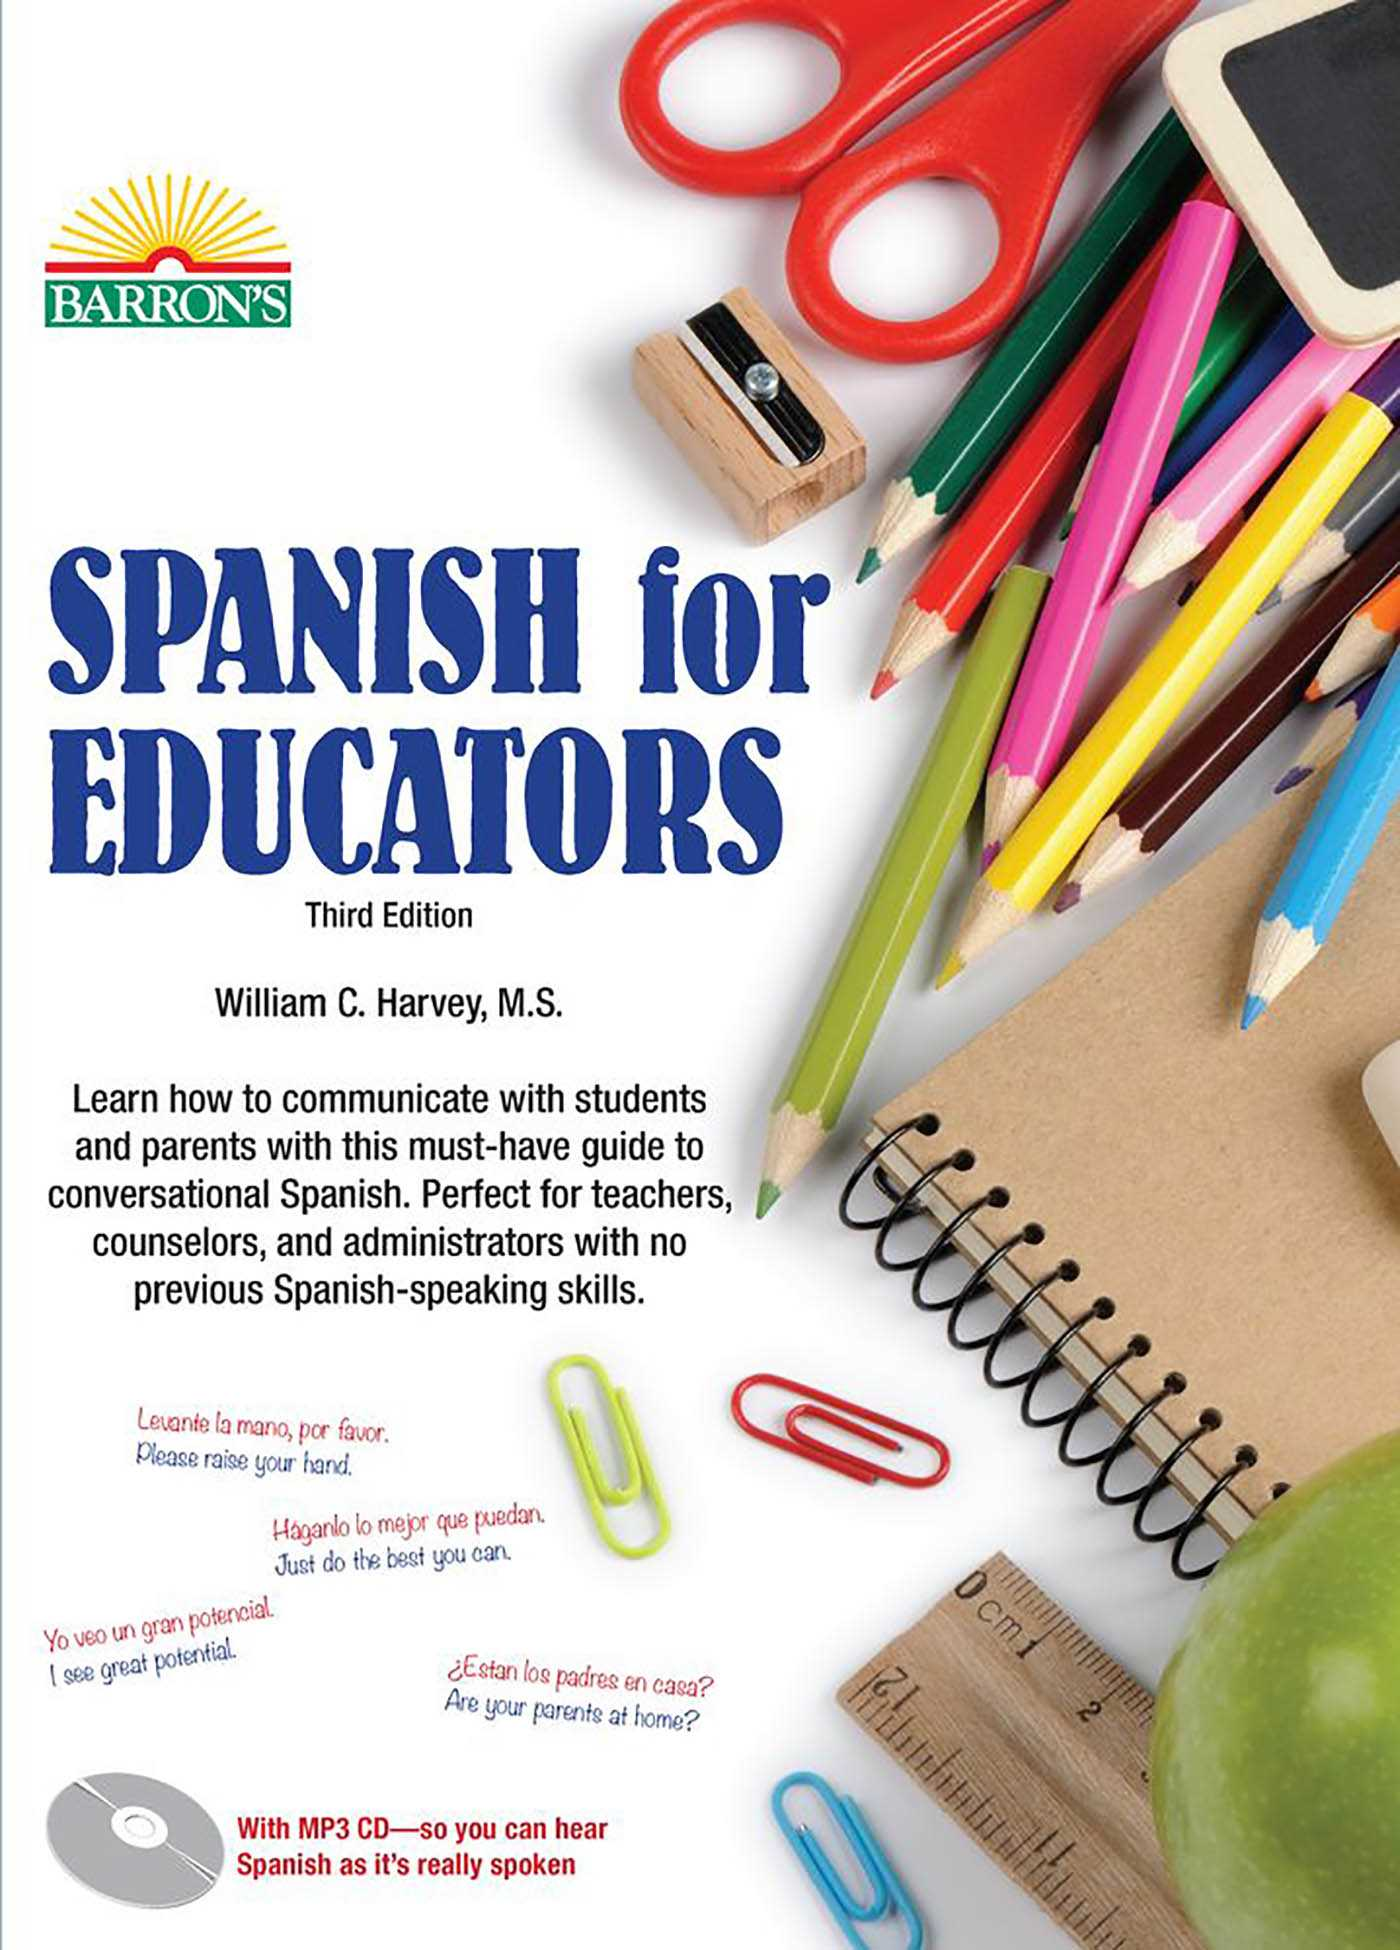 Spanish for Educators: with MP3 CD | Book by William C